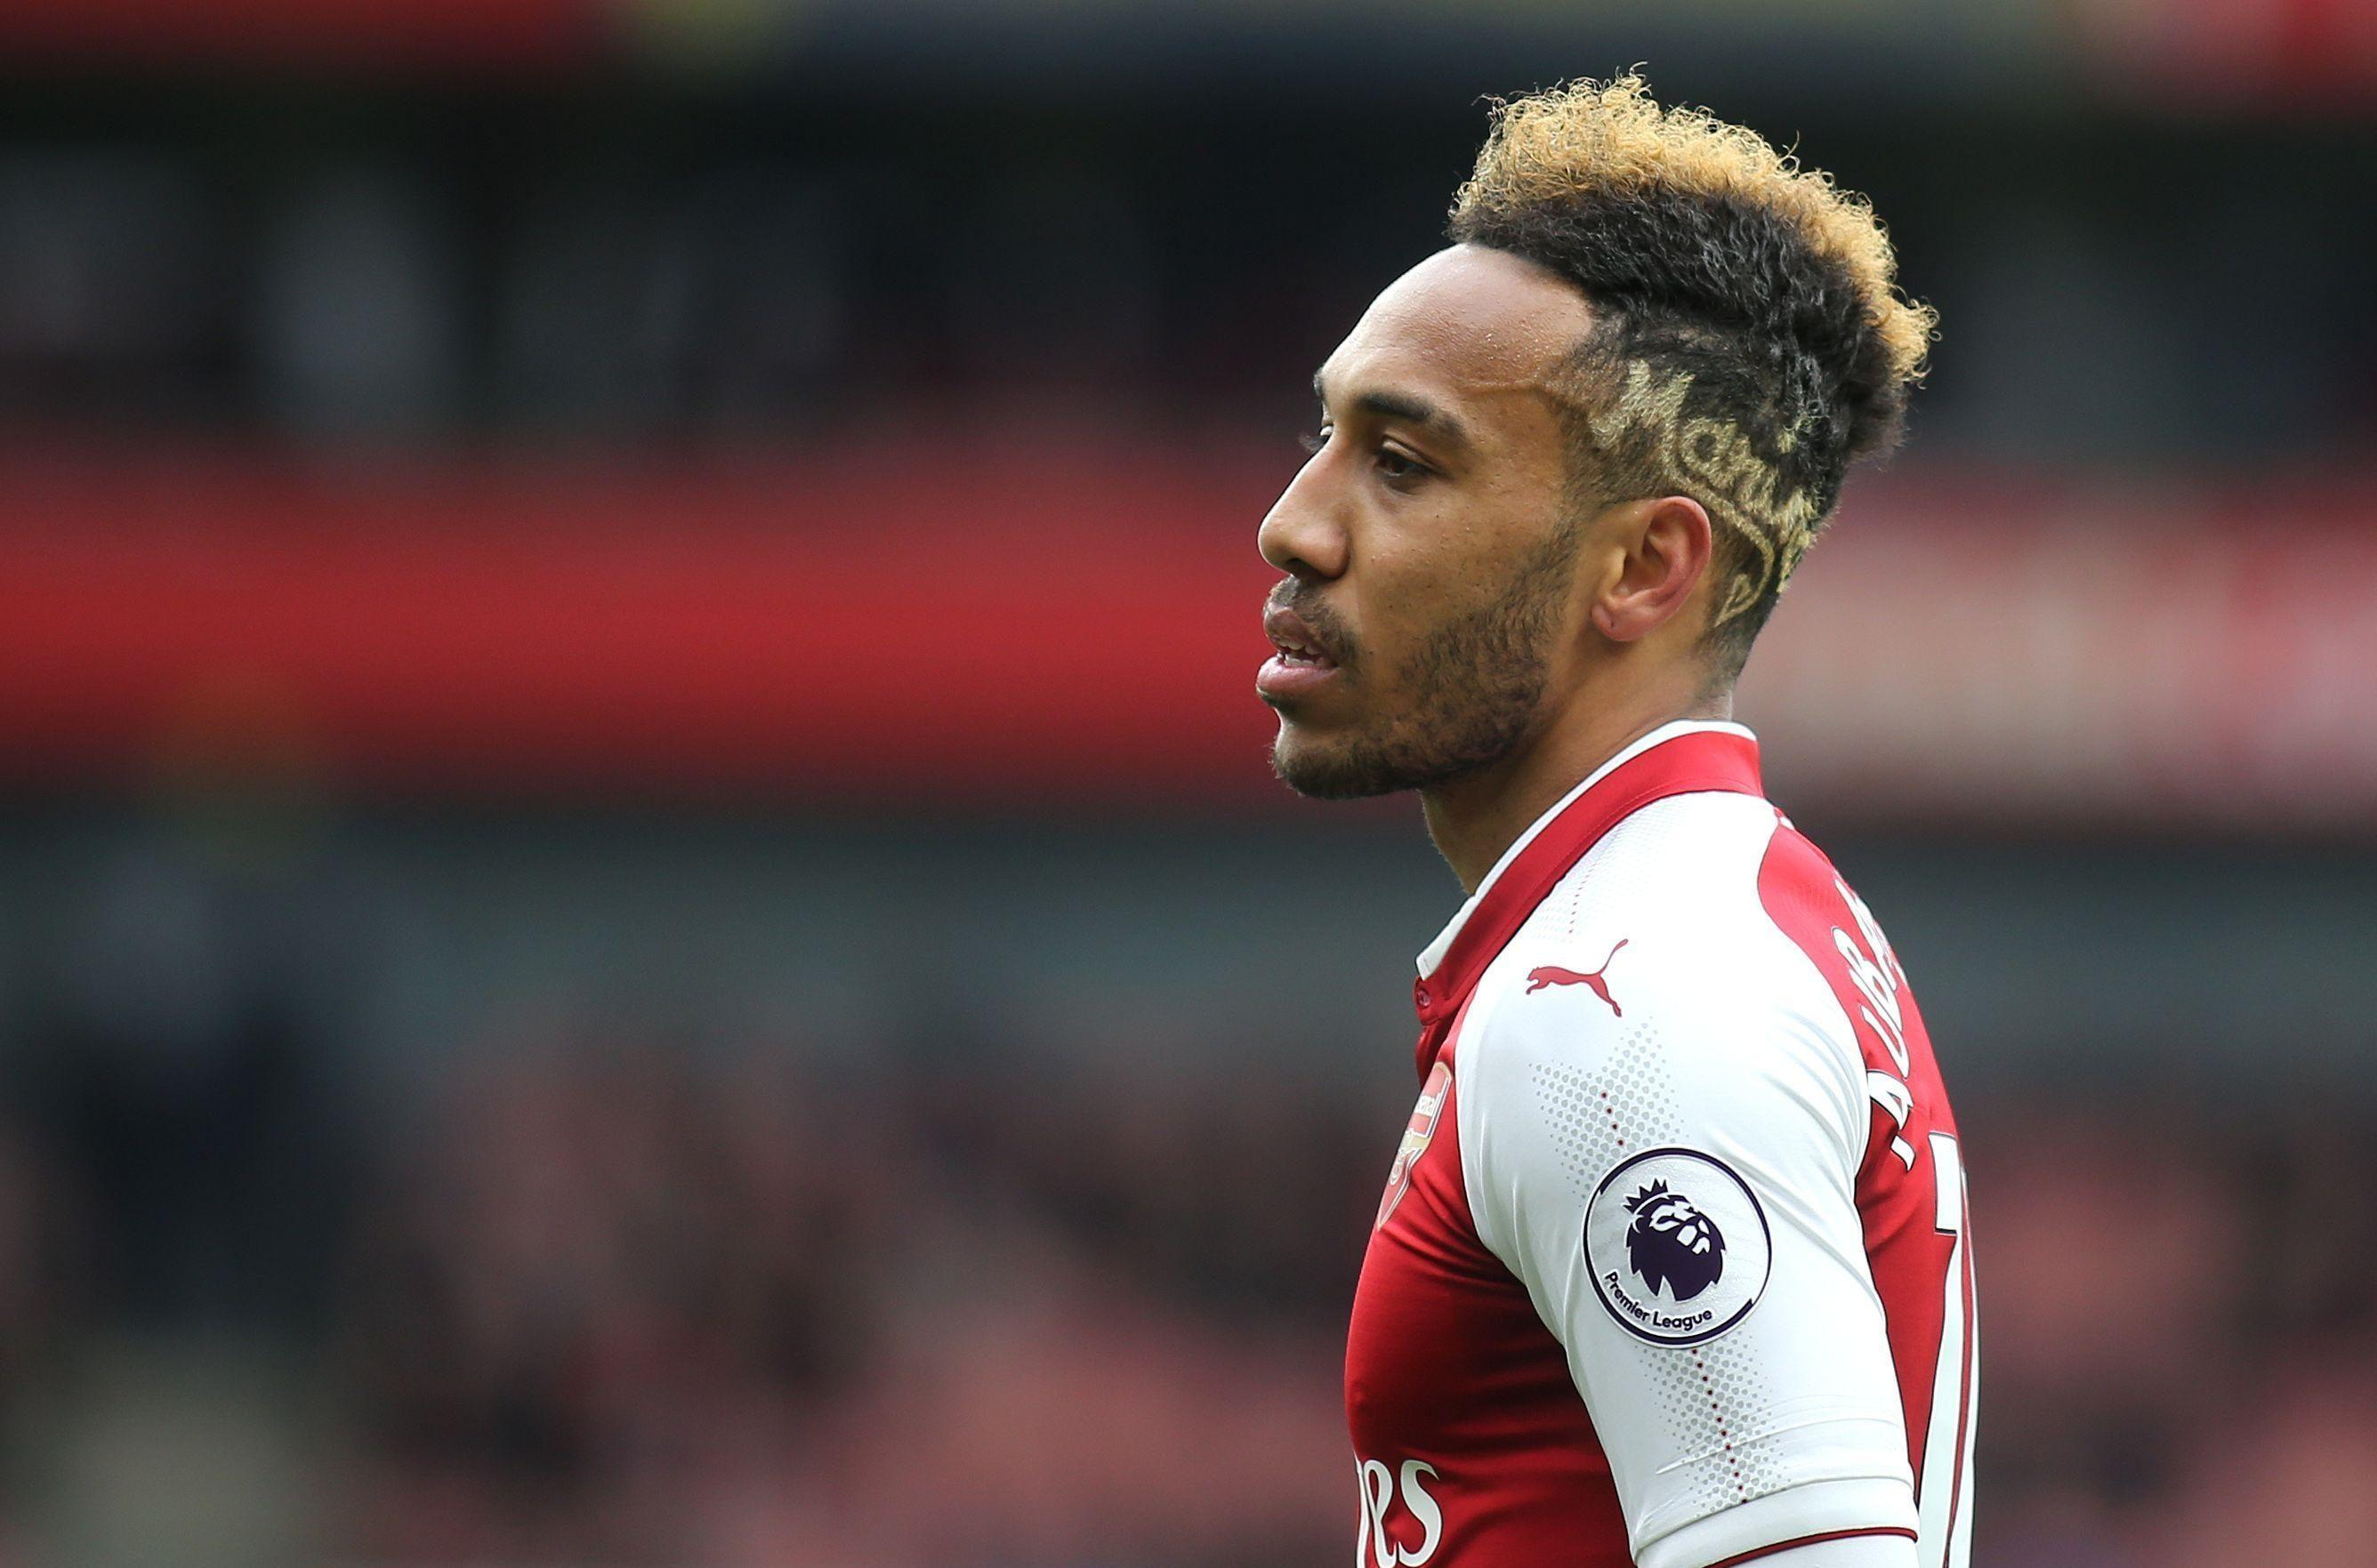 Fifa 18 Pierre Emerick Aubameyang Is No Longer The Joint